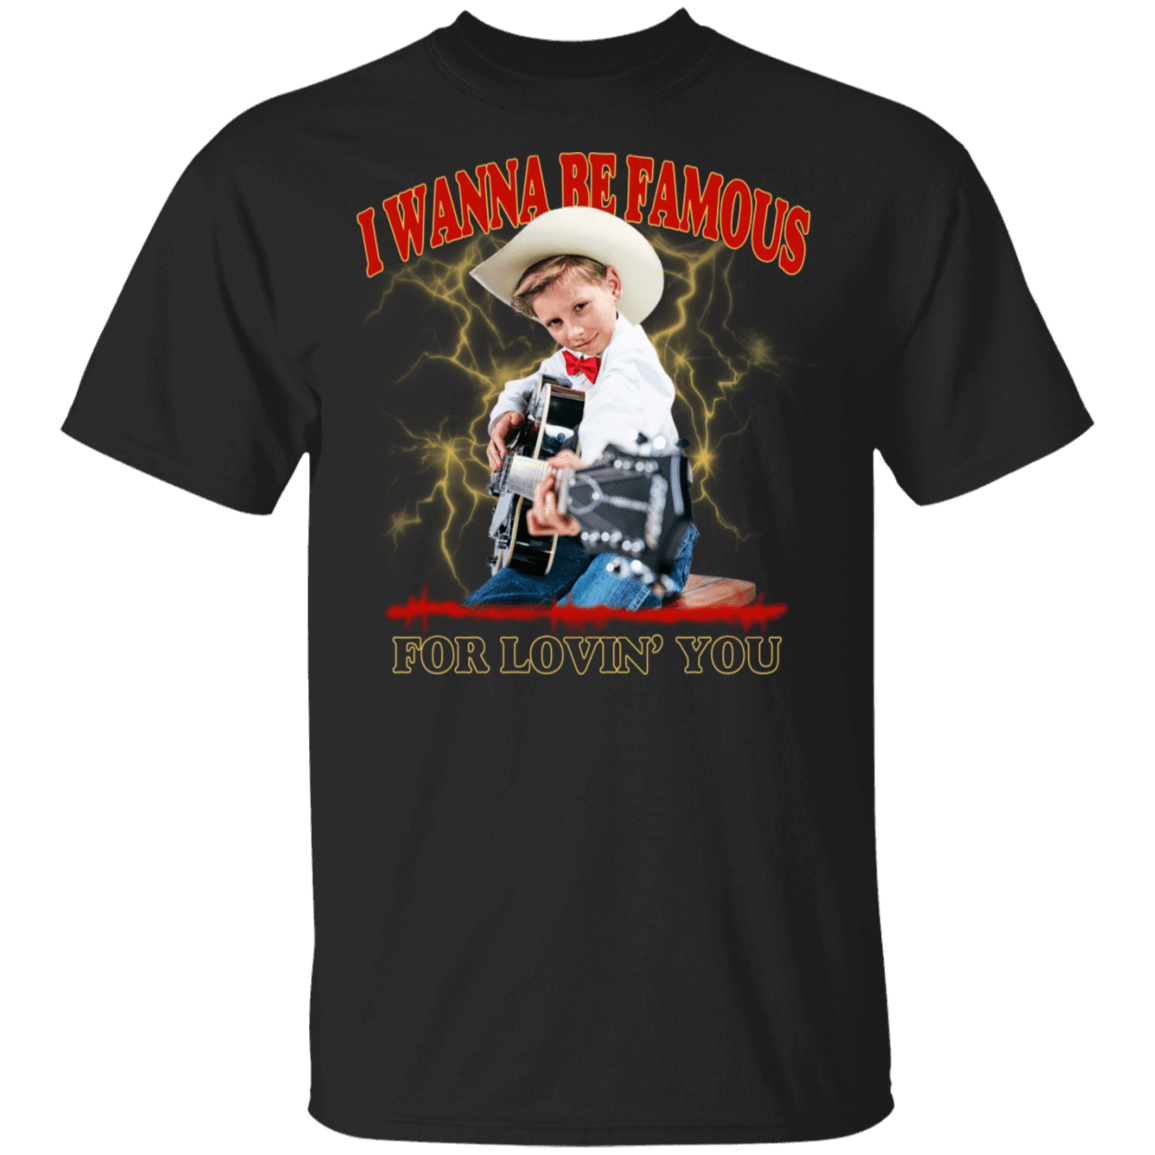 I Wanna Be Famous For Lovin You Mason Ramsey T-Shirts, Hoodies 22-113-80162968-252 - Tee Ript